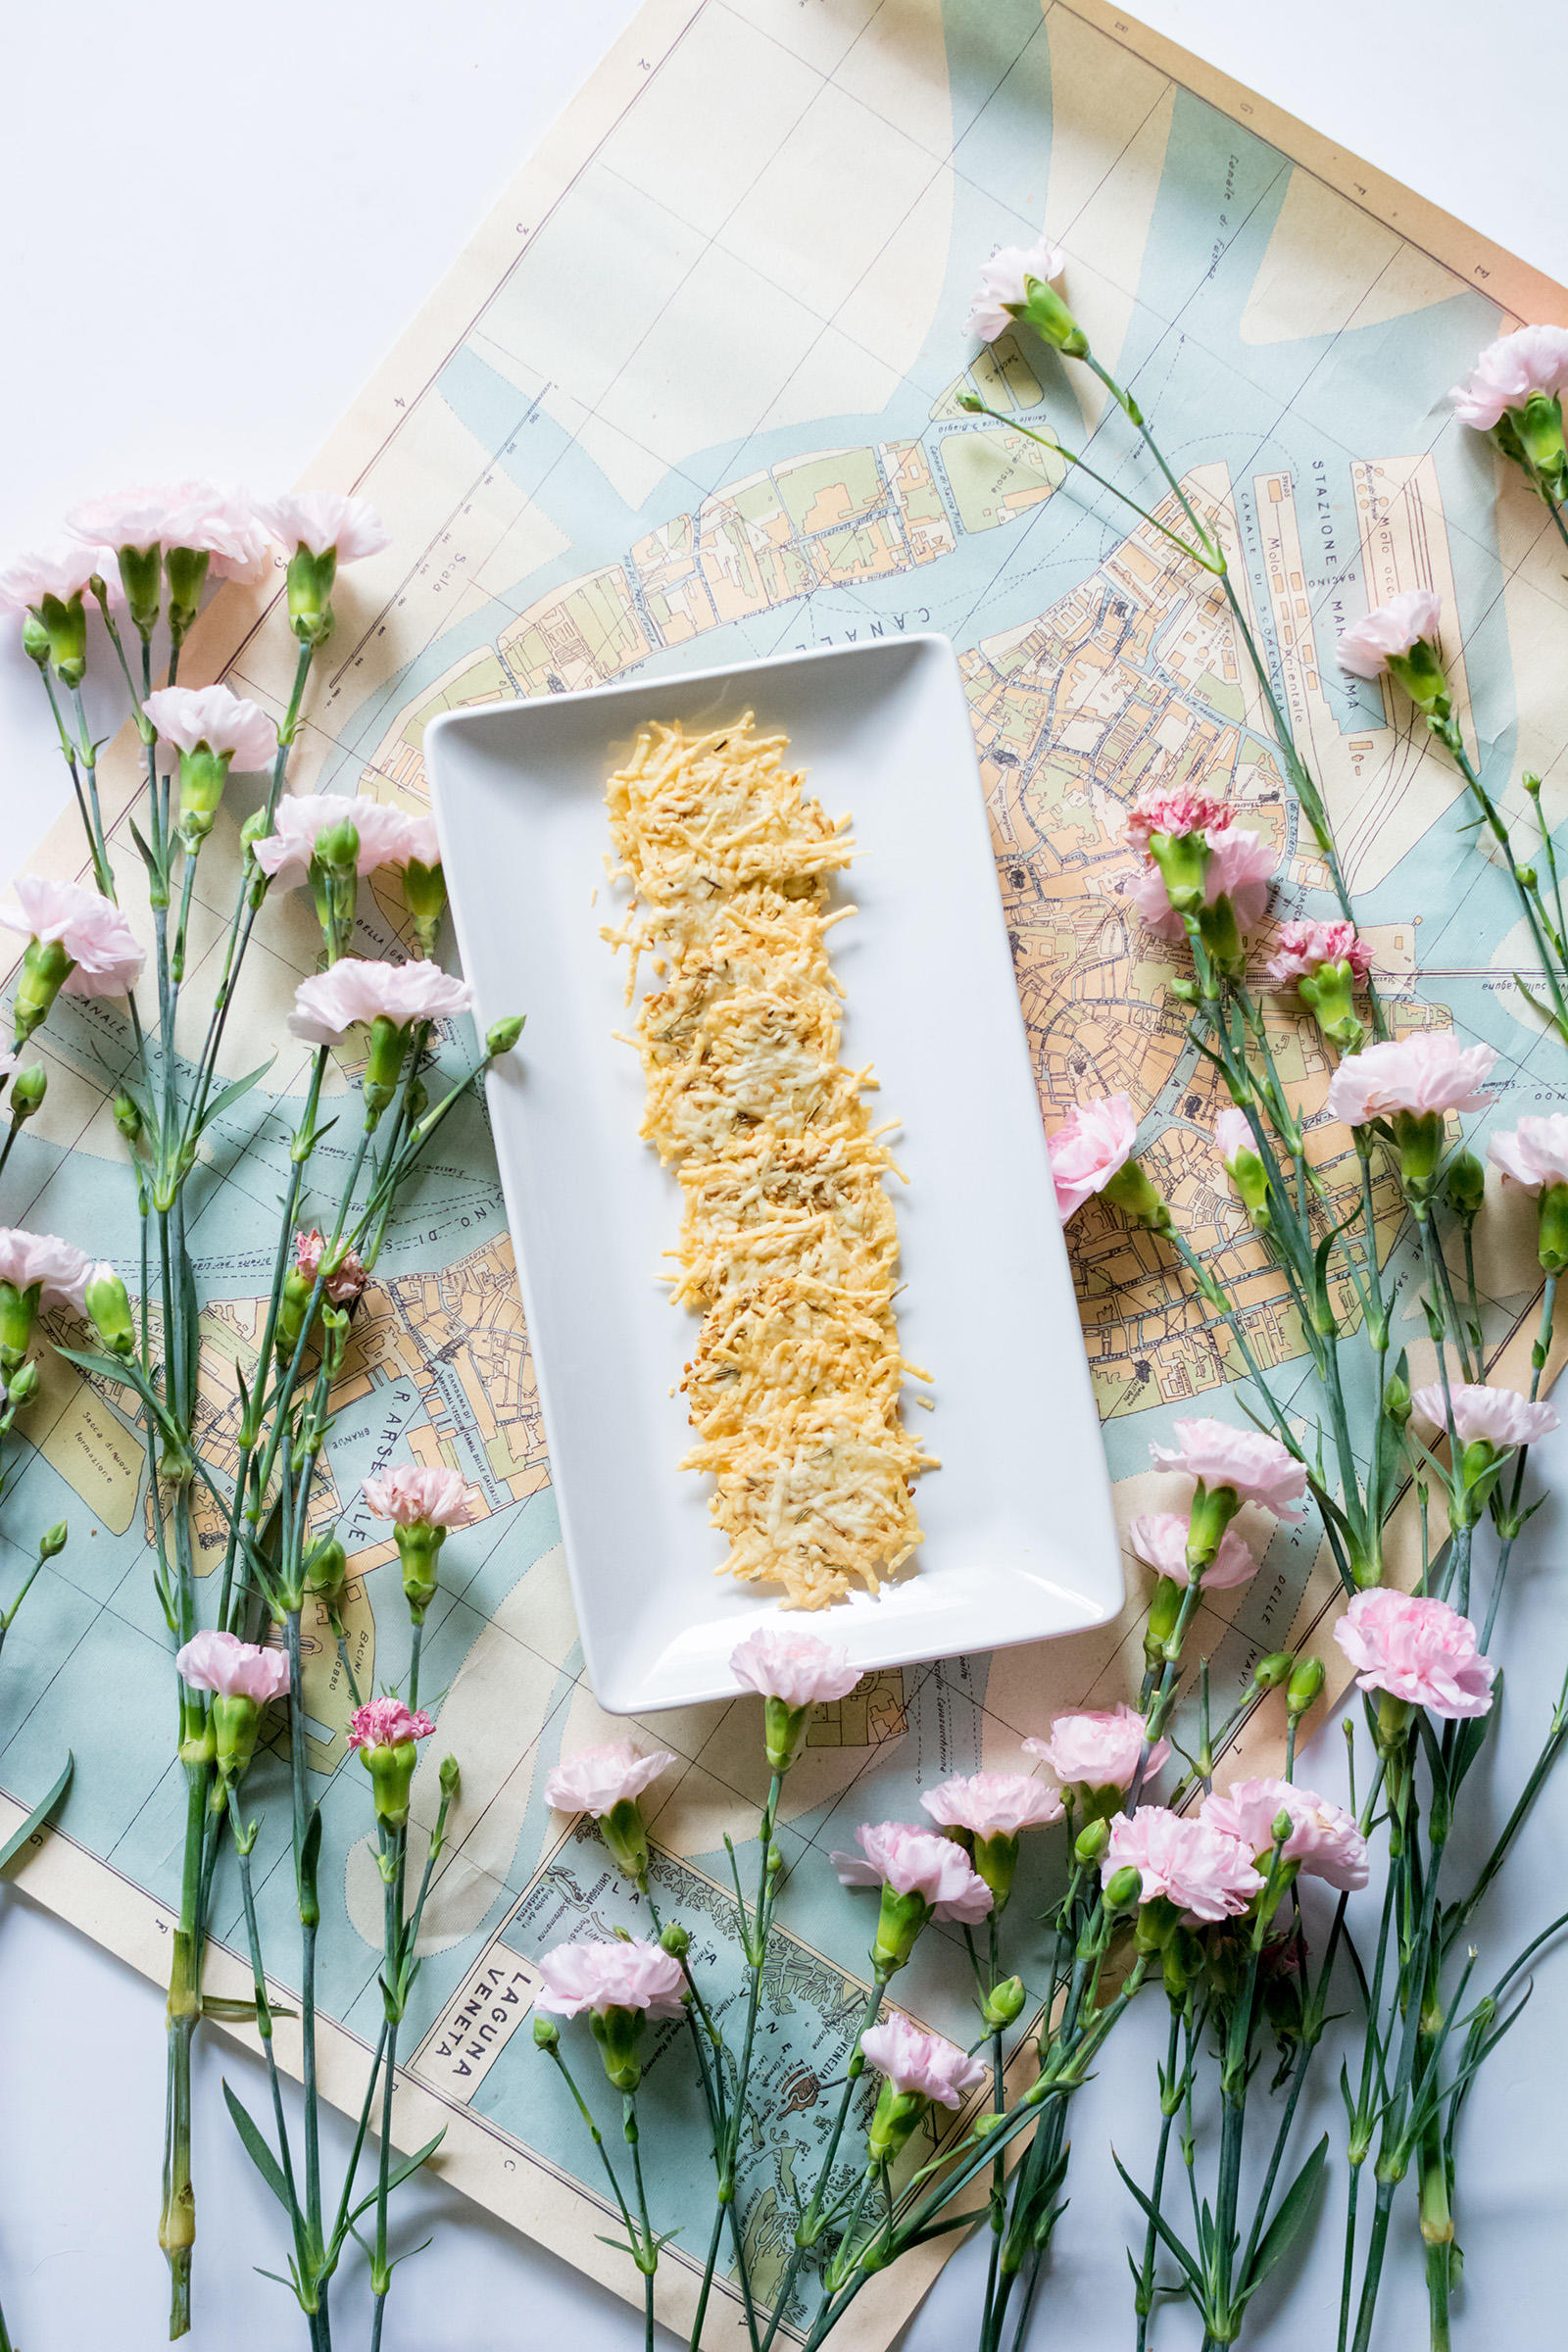 Rosemary Parmesan Cheese Flax Seed Crackers